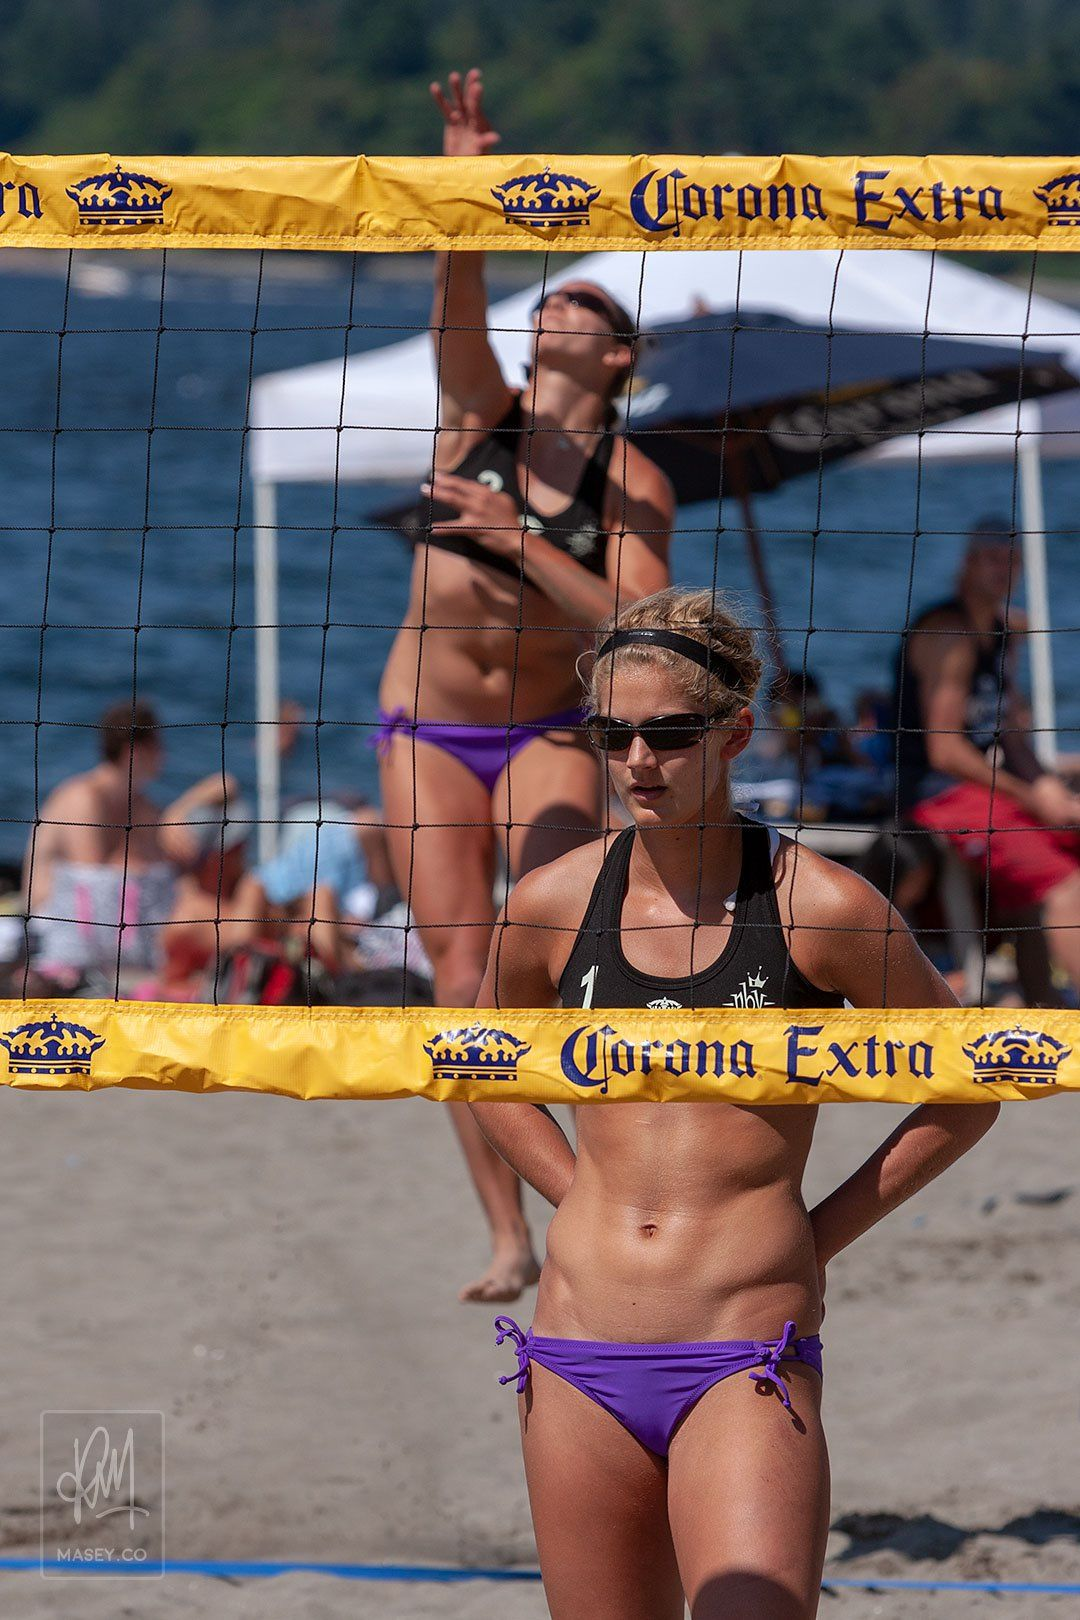 2009 Corona Open Beach Volleyball In 2020 Beach Volleyball Volleyball Outfits Olympic Gymnastics